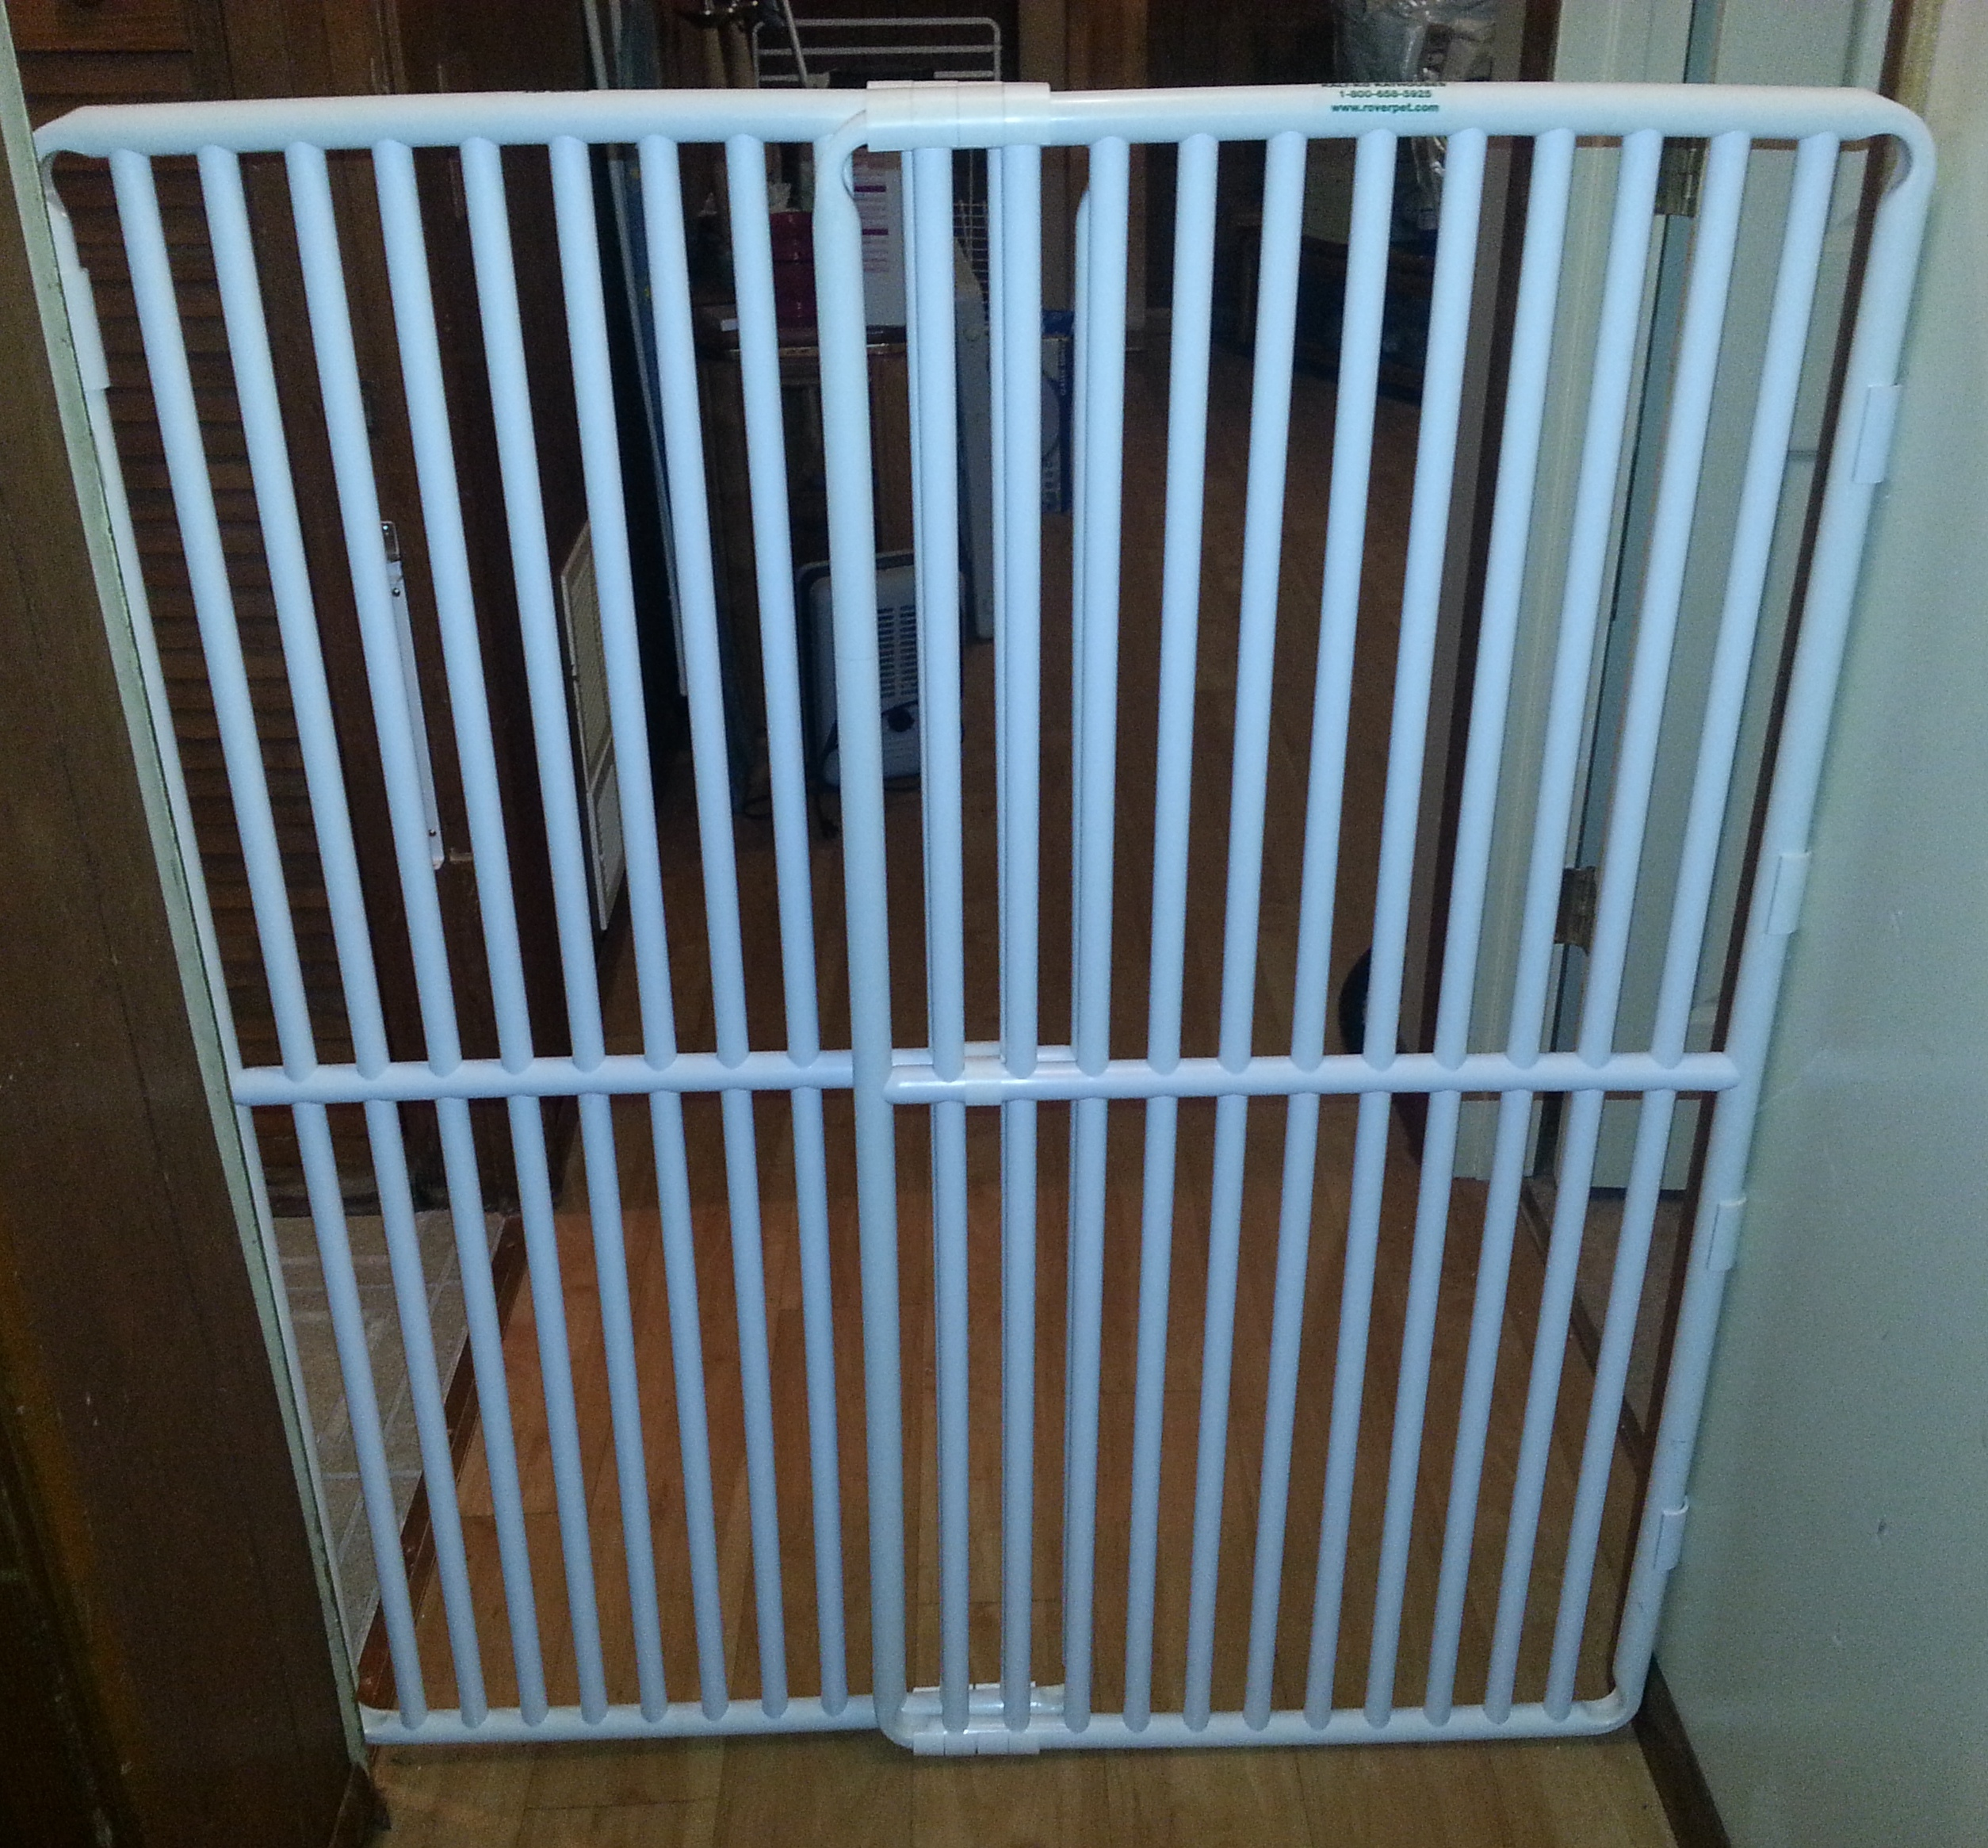 10 Wide Indoor Dog Gate Is Now Available From Rover Company